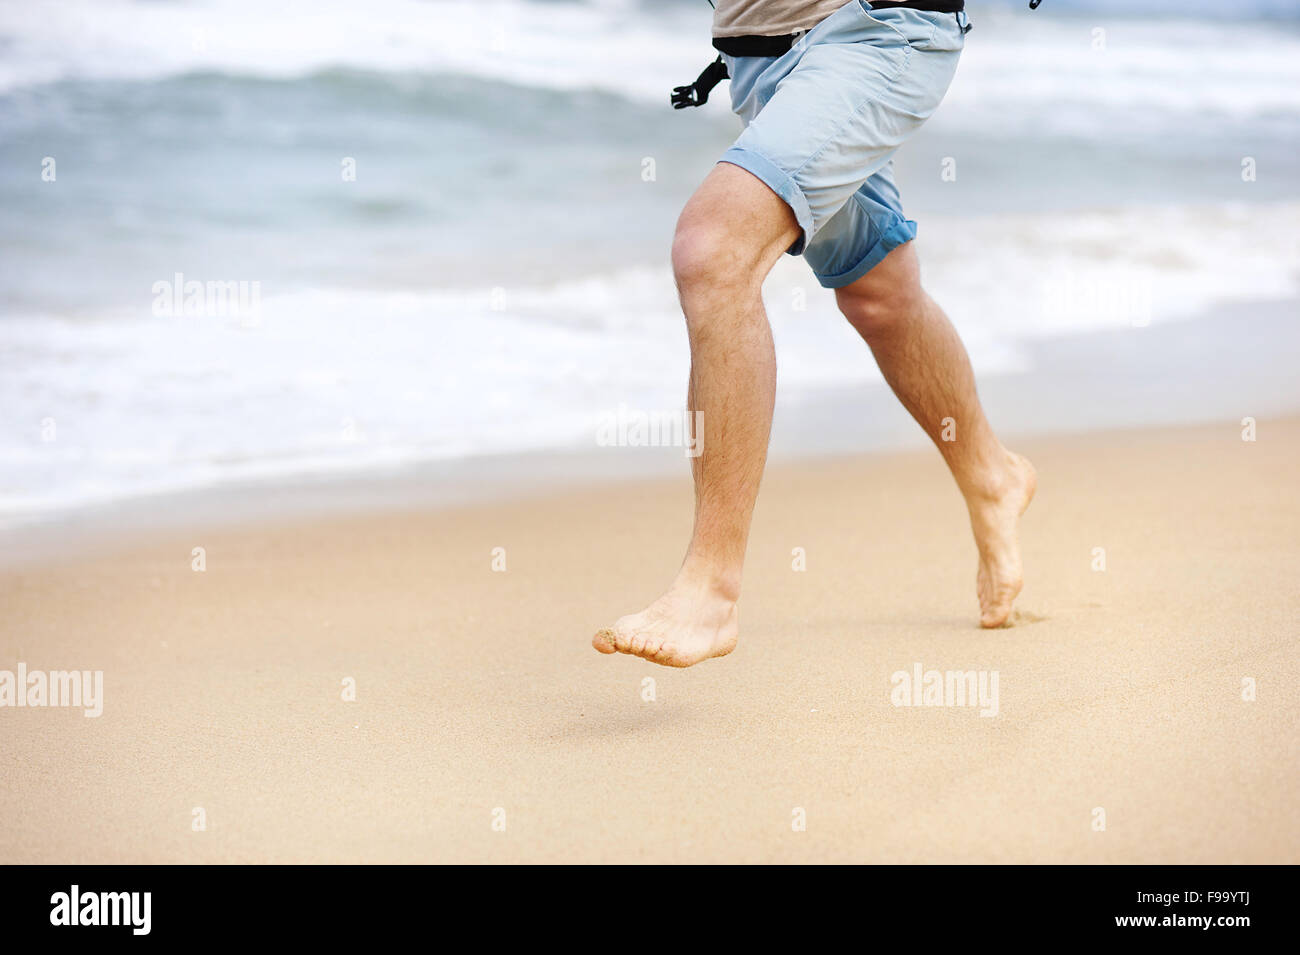 Detail of male feet running at the sandy beach Stock Photo